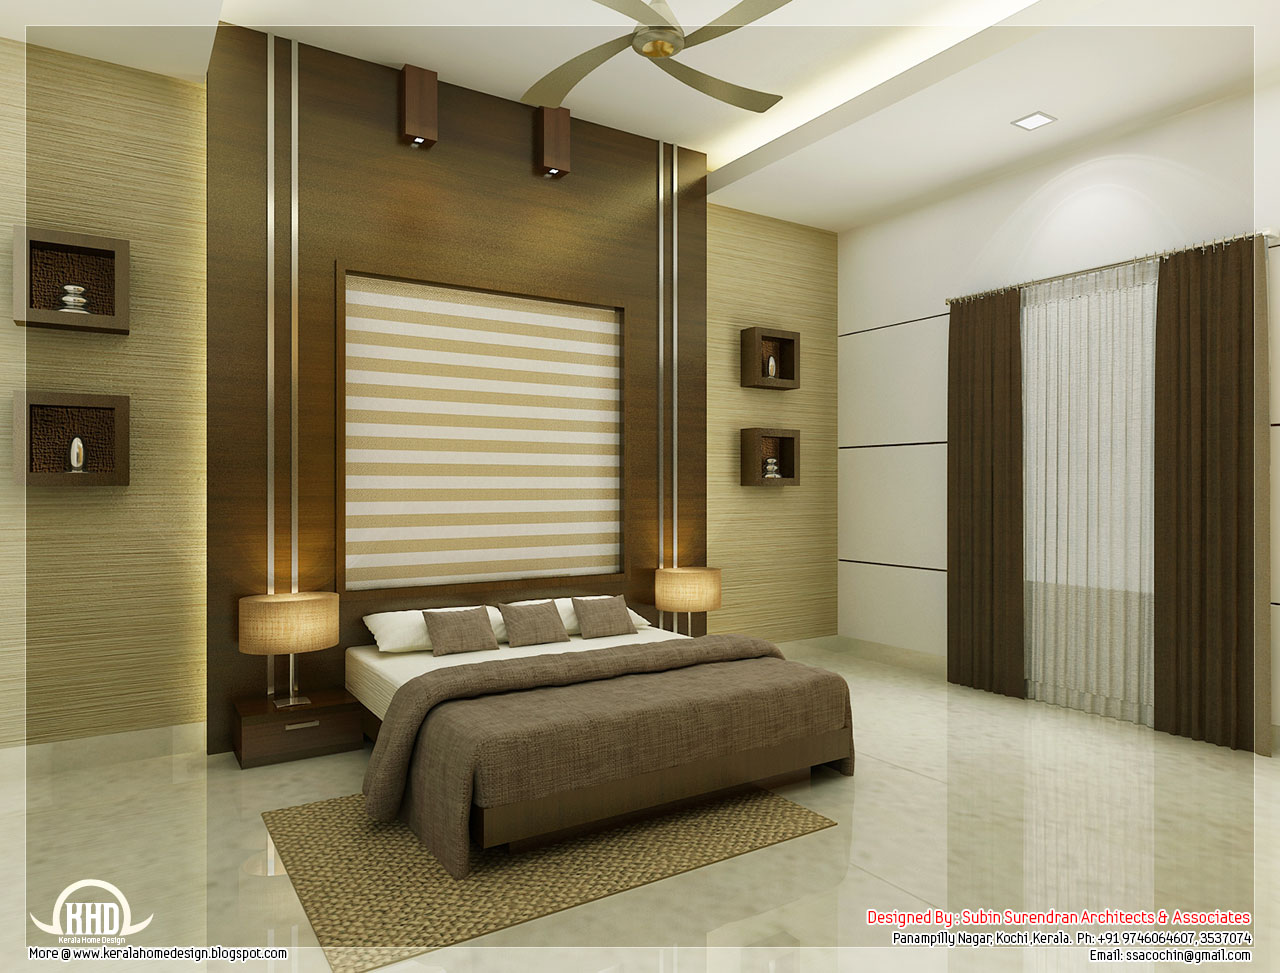 Beautiful bedroom interior designs kerala home design and for Beautiful bedroom design hd images